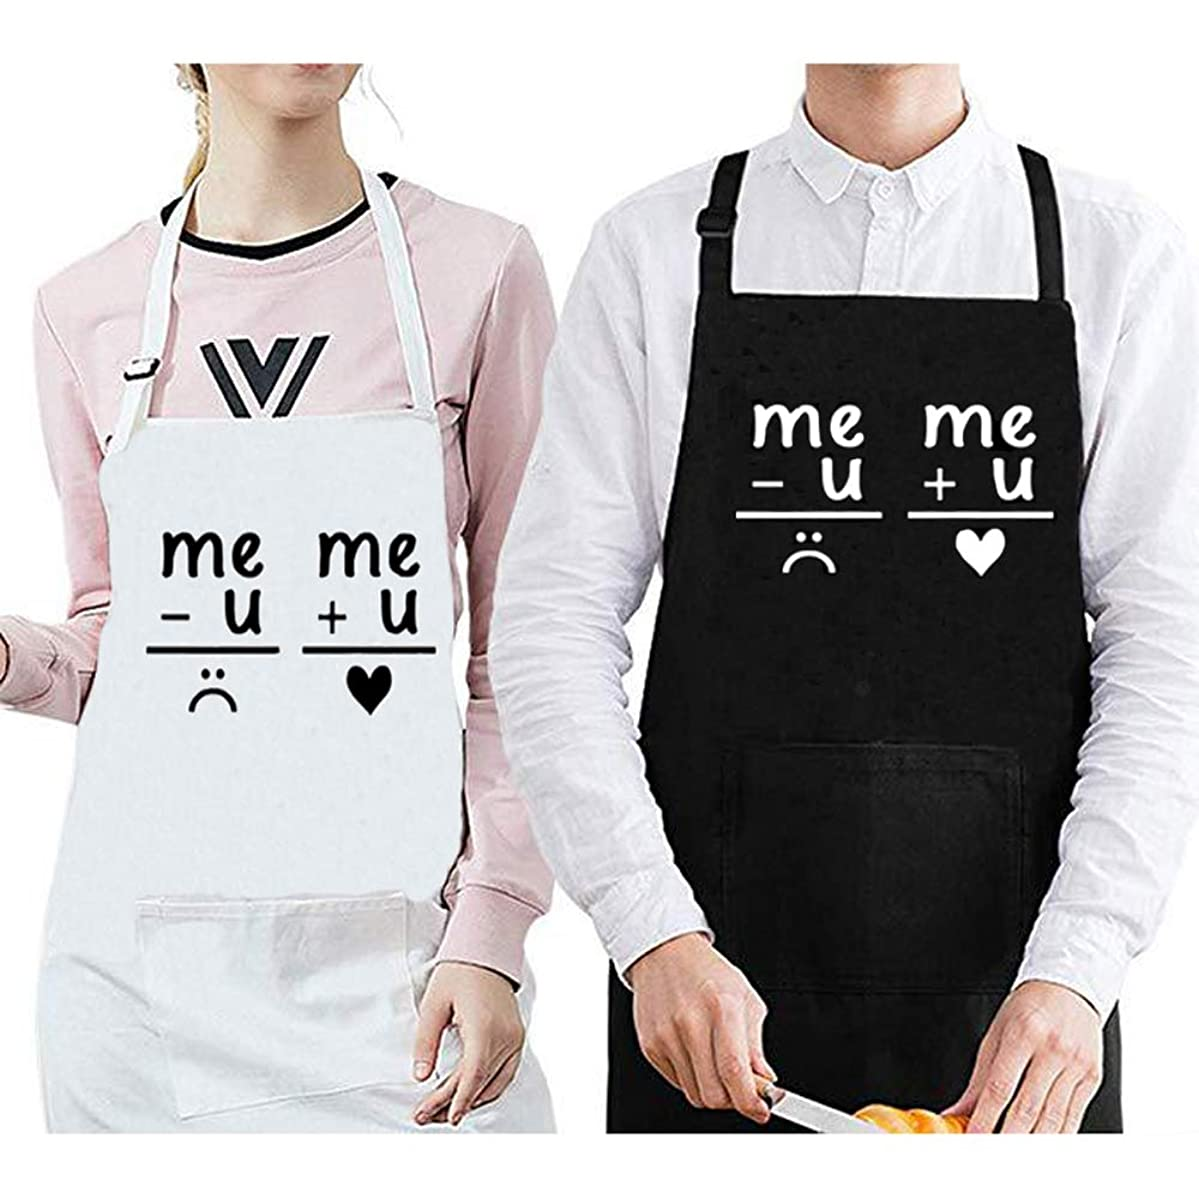 CLOCOR Couple Apron Set, Wedding Engagement Gift for Couples, 100% Cotton, Adjustable Neck Strap